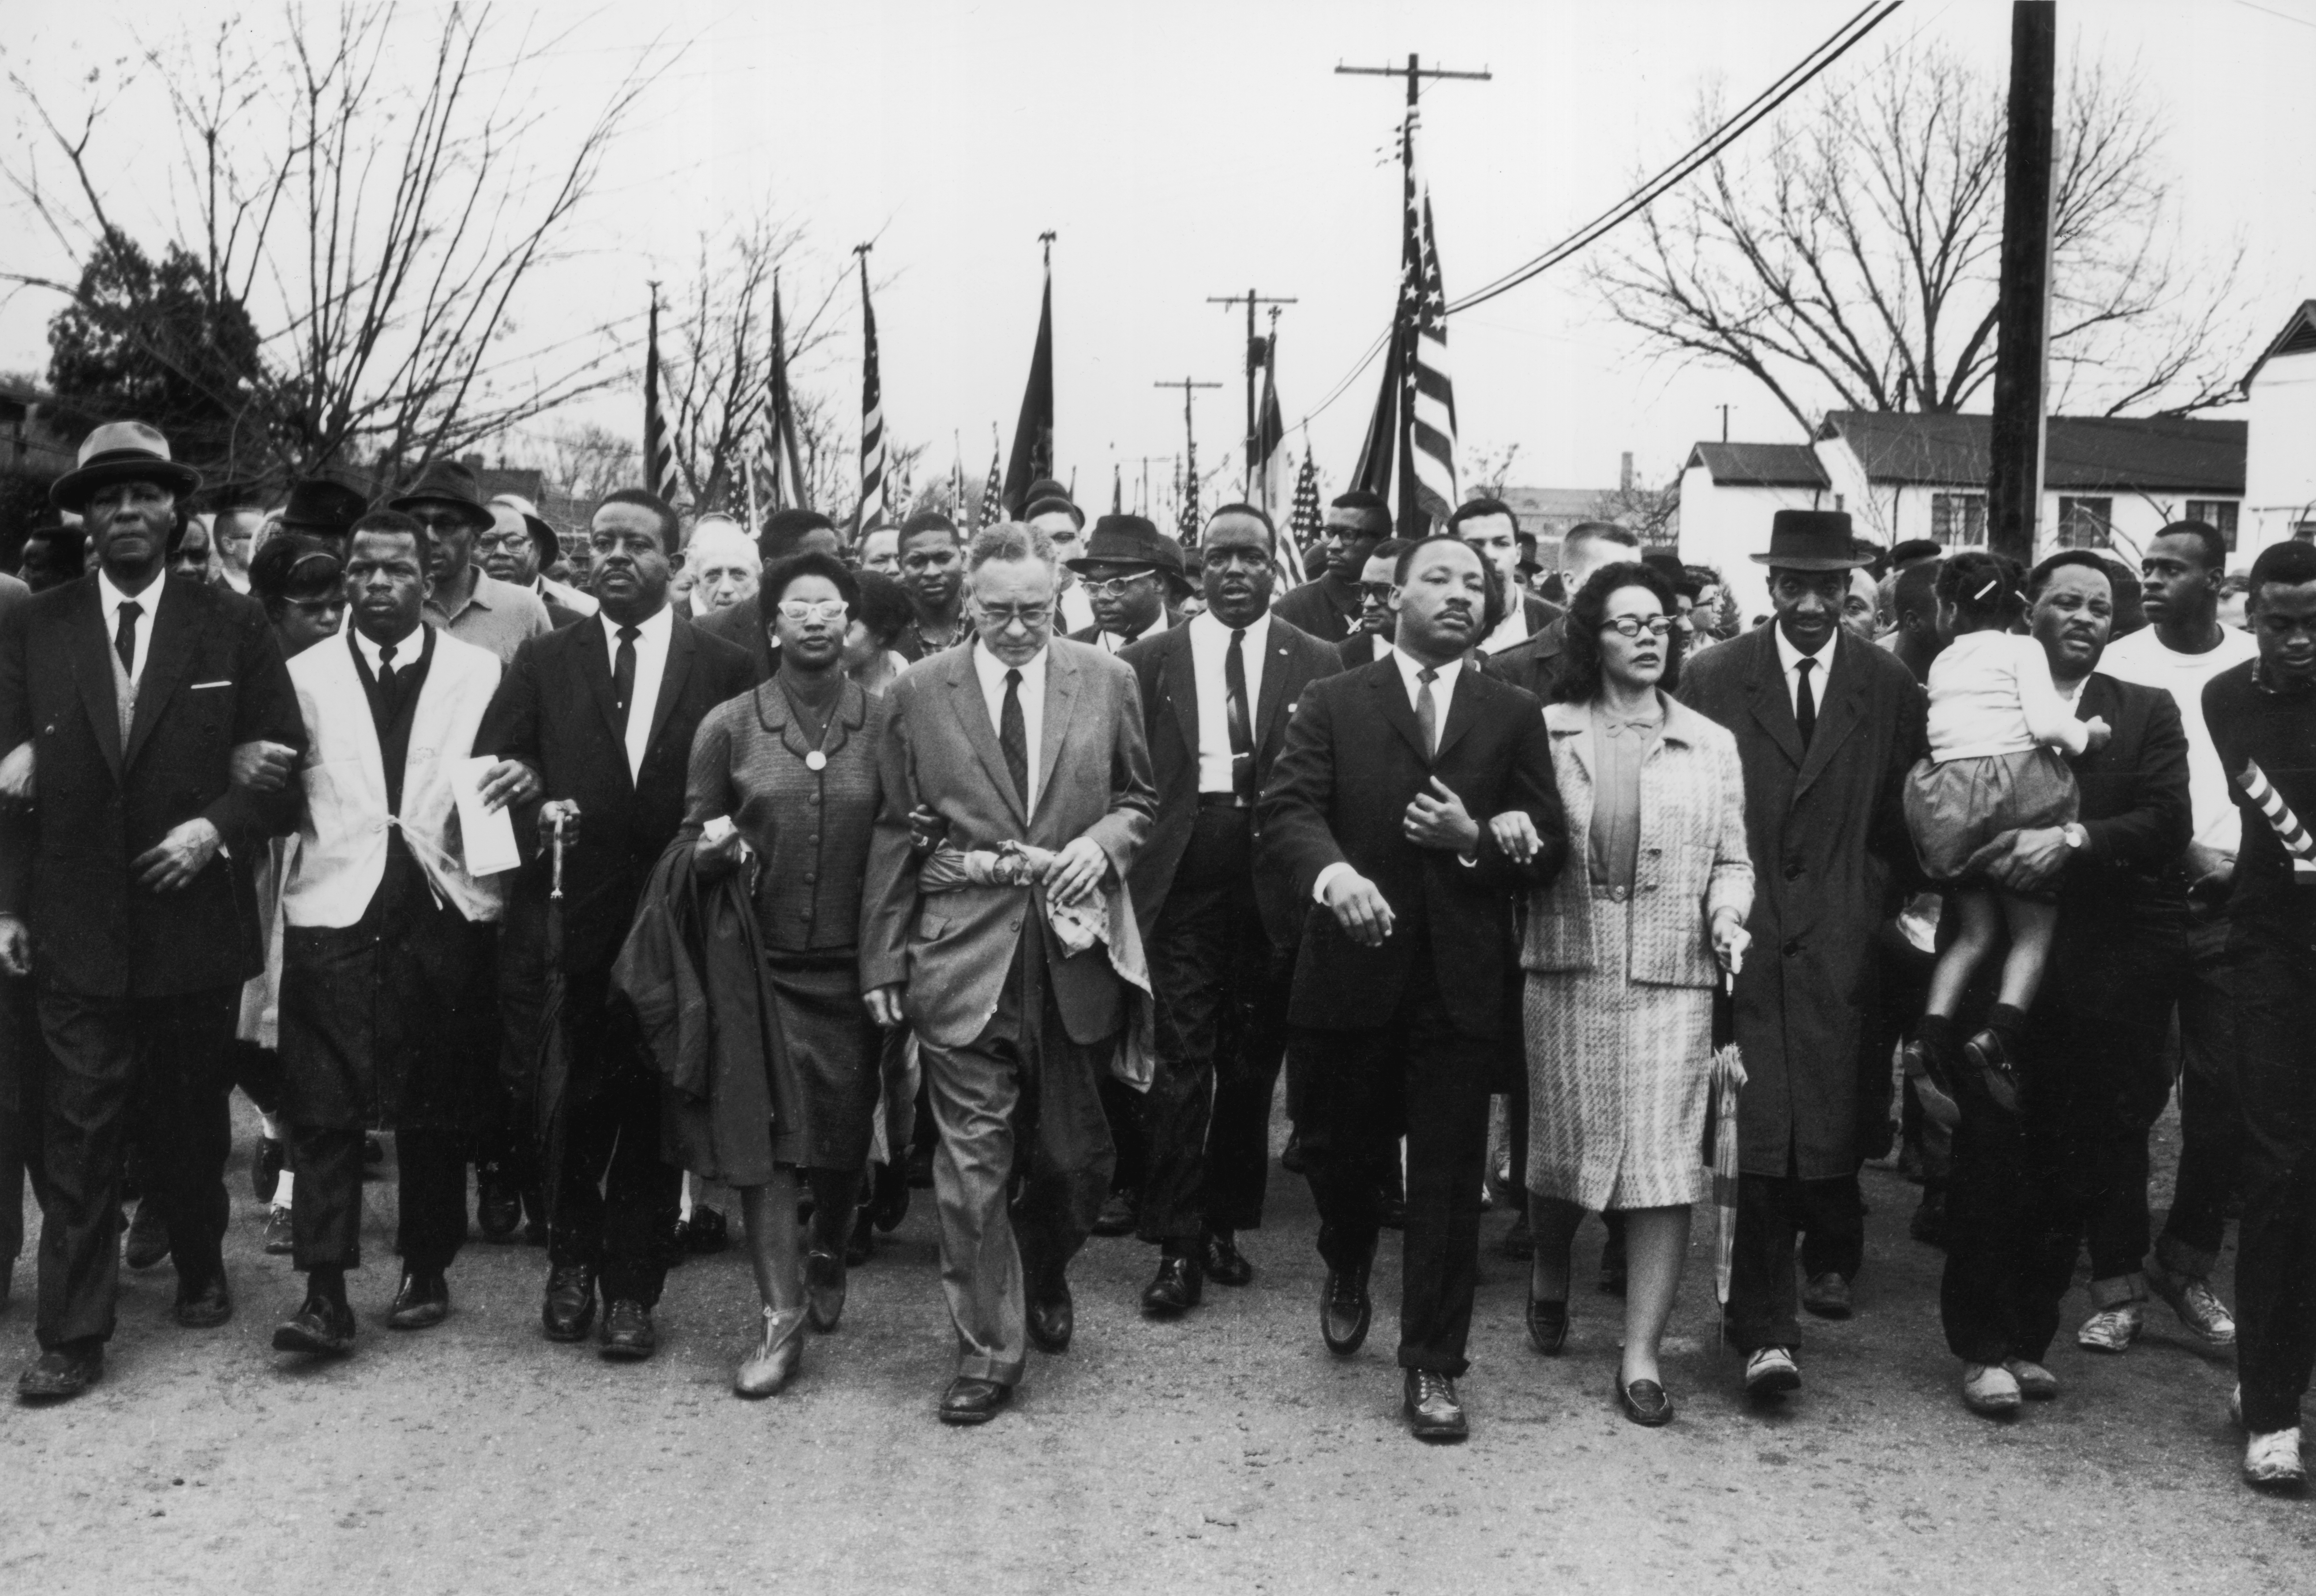 30th March 1965: American civil rights campaigner Martin Luther King (1929 - 1968) and his wife Coretta Scott King lead a black voting rights march from Selma, Alabama, to the state capital in Montgomery. (Photo by William Lovelace/Express/Getty Images)